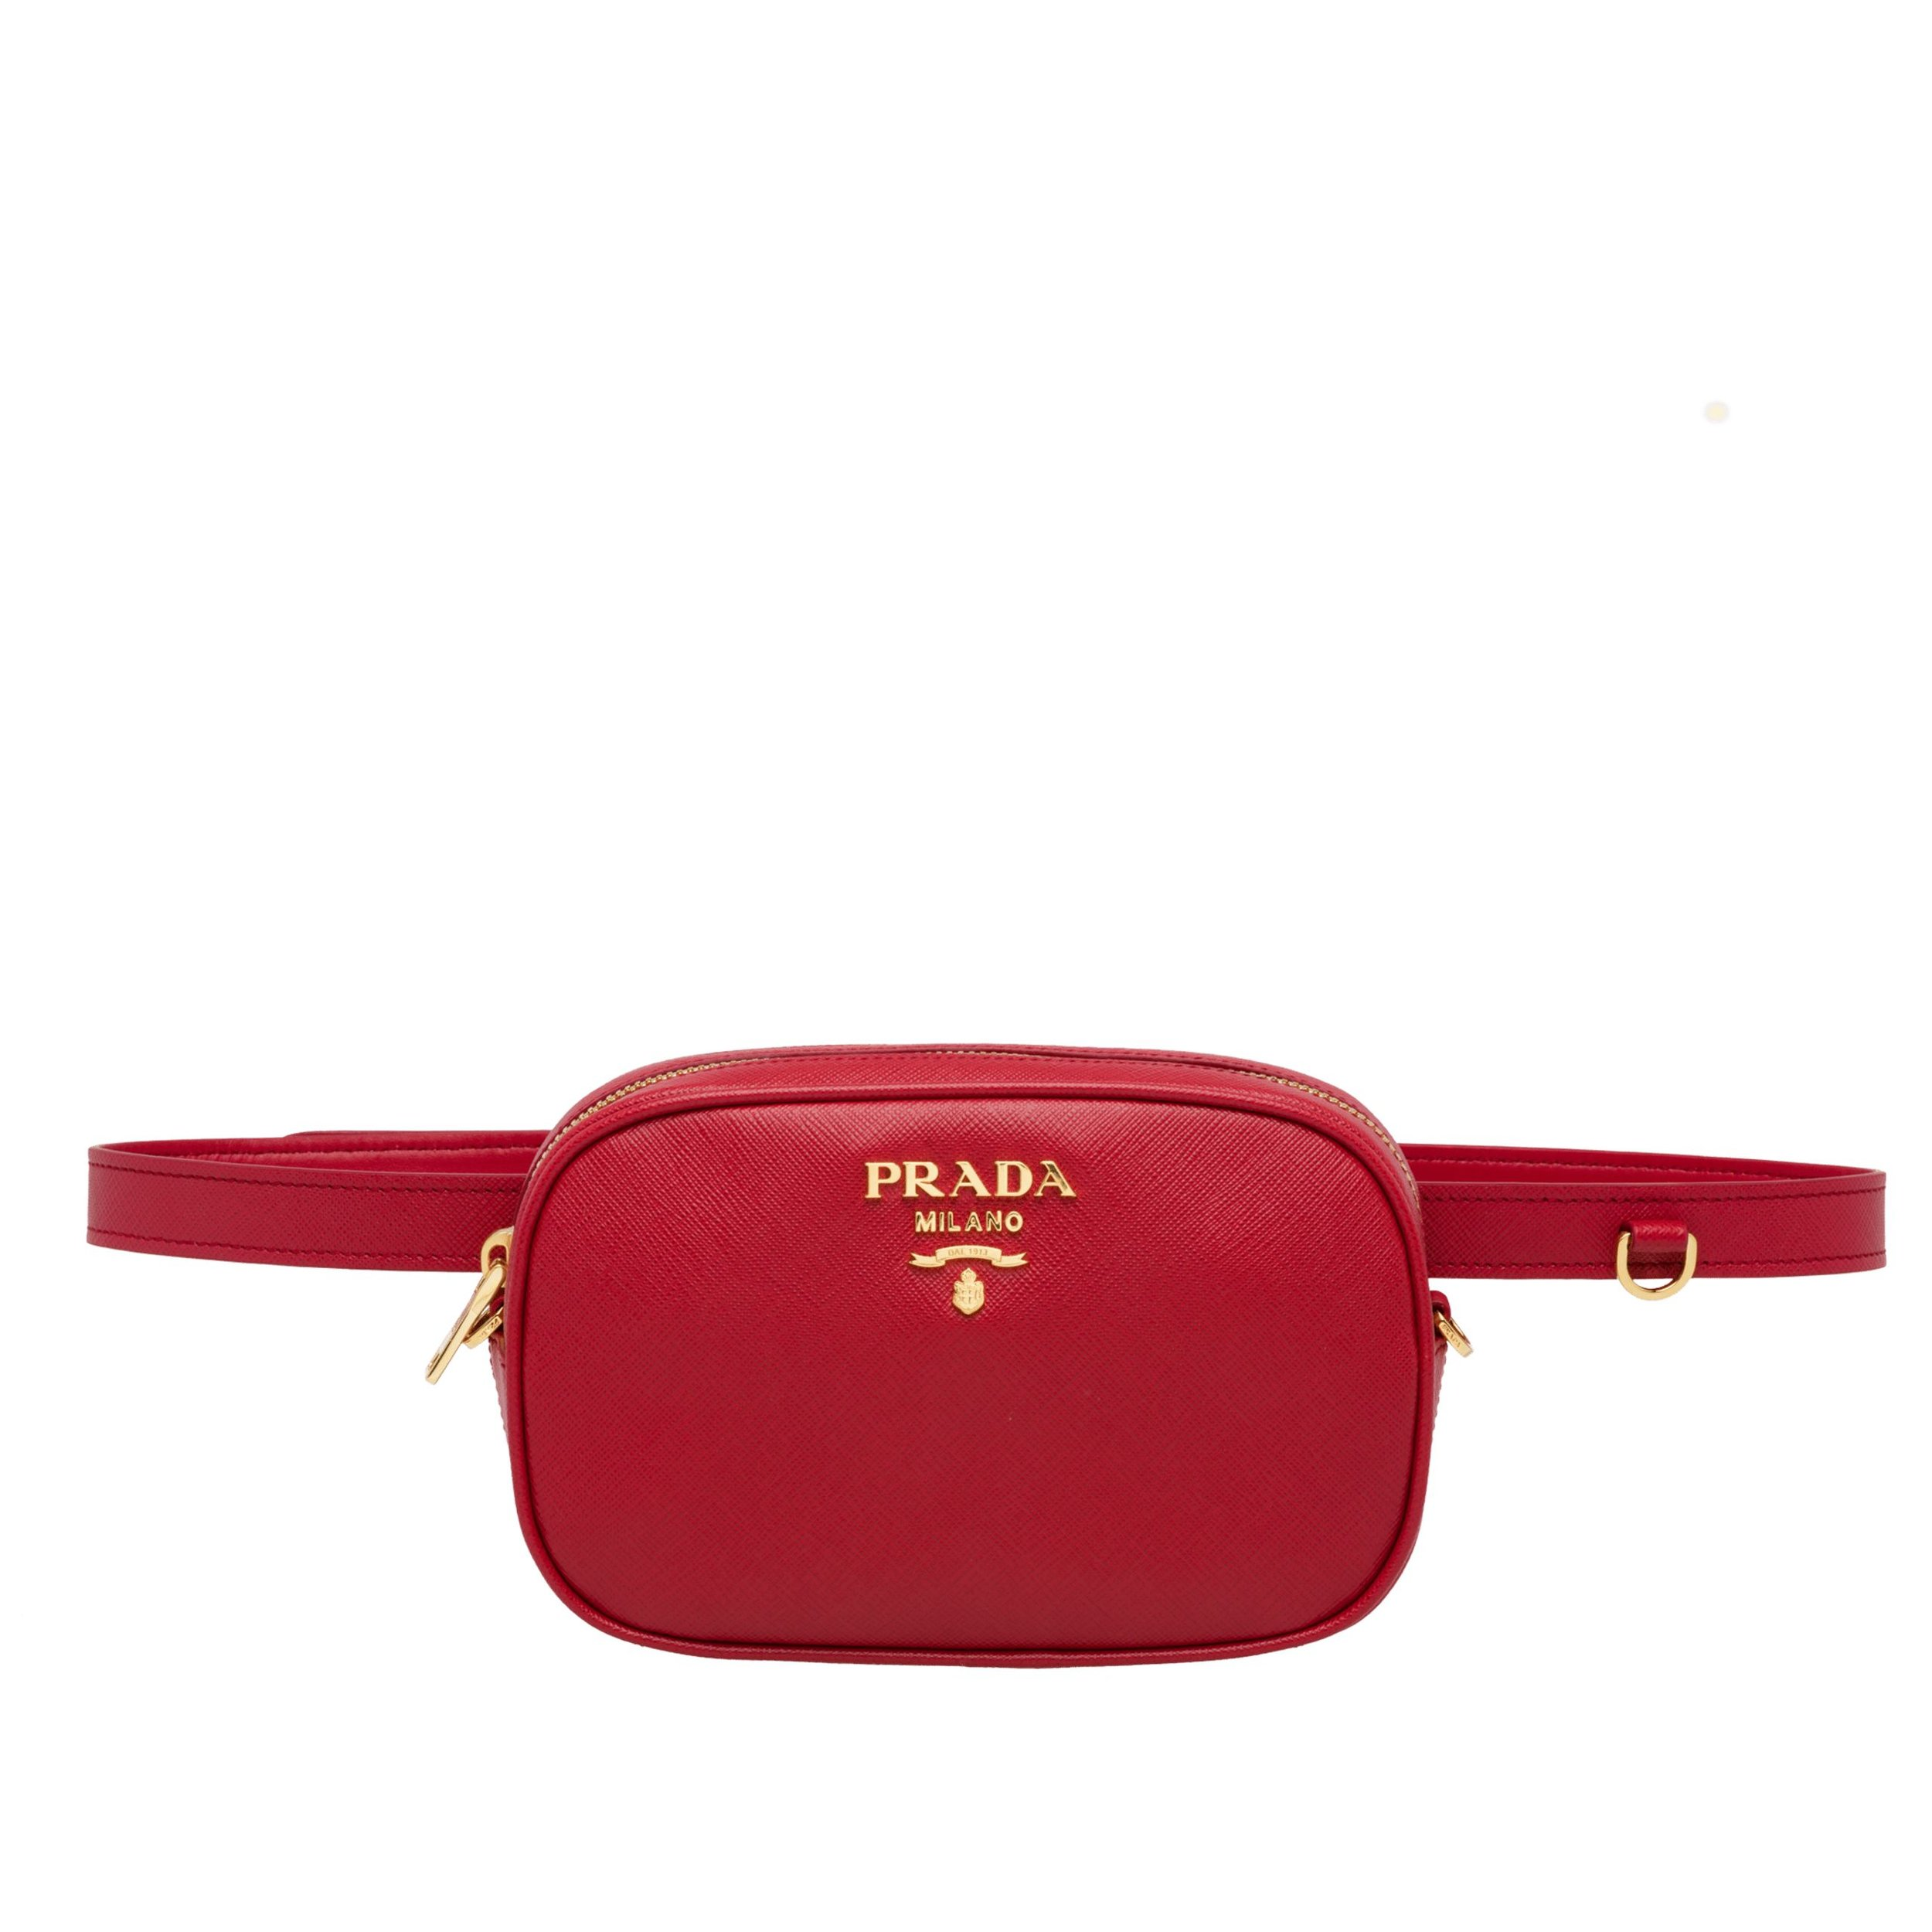 https://www.prada.com/us/en/products.saffiano_leather_belt_bag.1BL007_NZV_F068Z_V_OOO.html